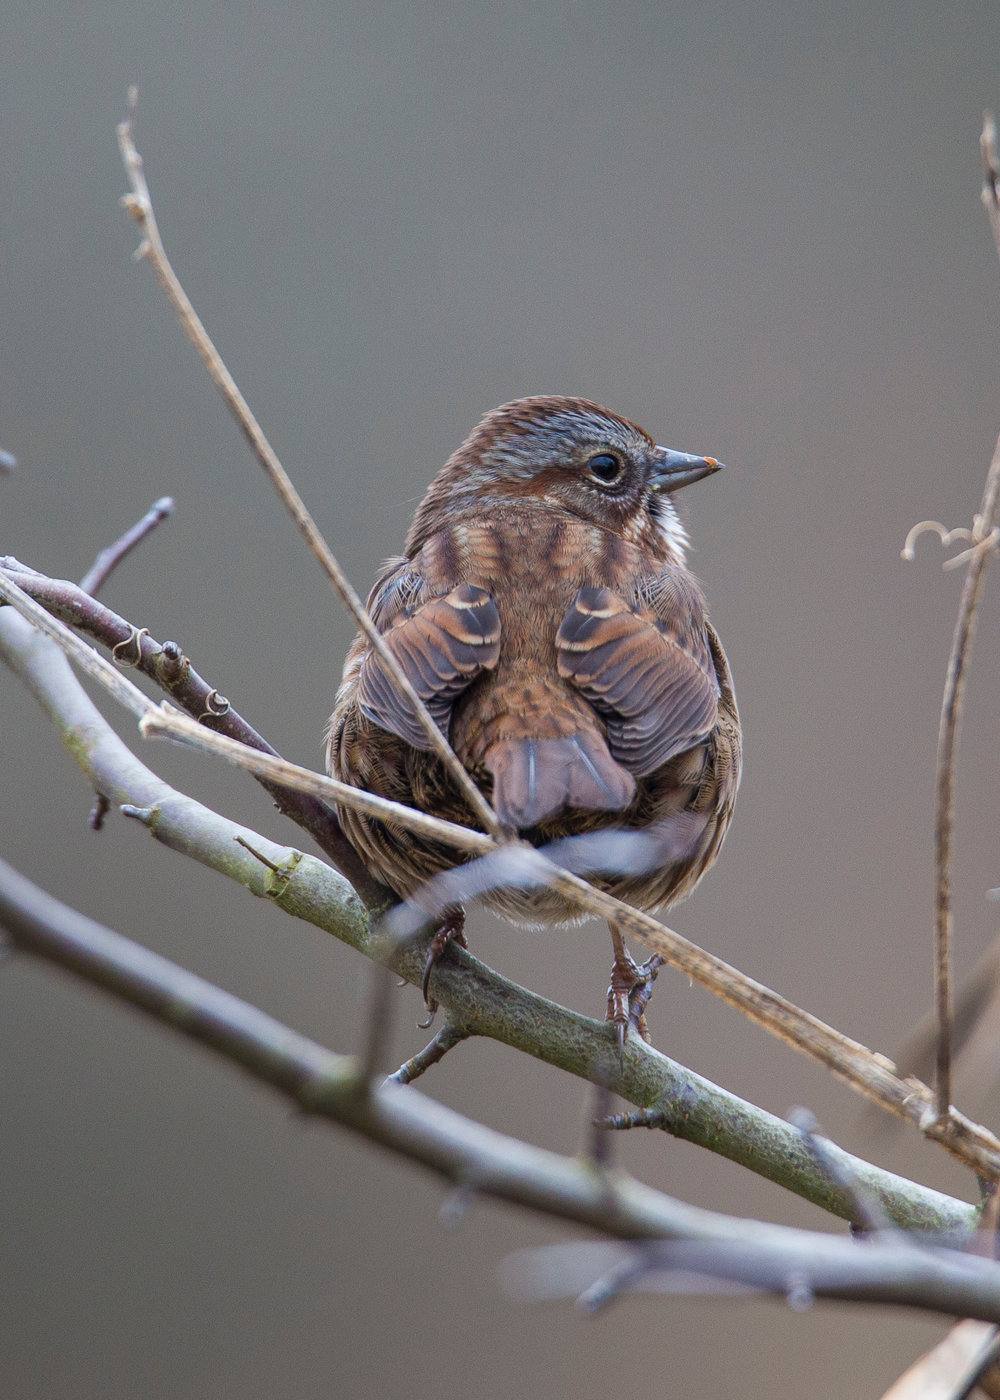 I believe this is a Song Sparrow, but I'm open to being corrected. What struck me was the pattern on the feathers from behind - looks like eyes on a much bigger bird!